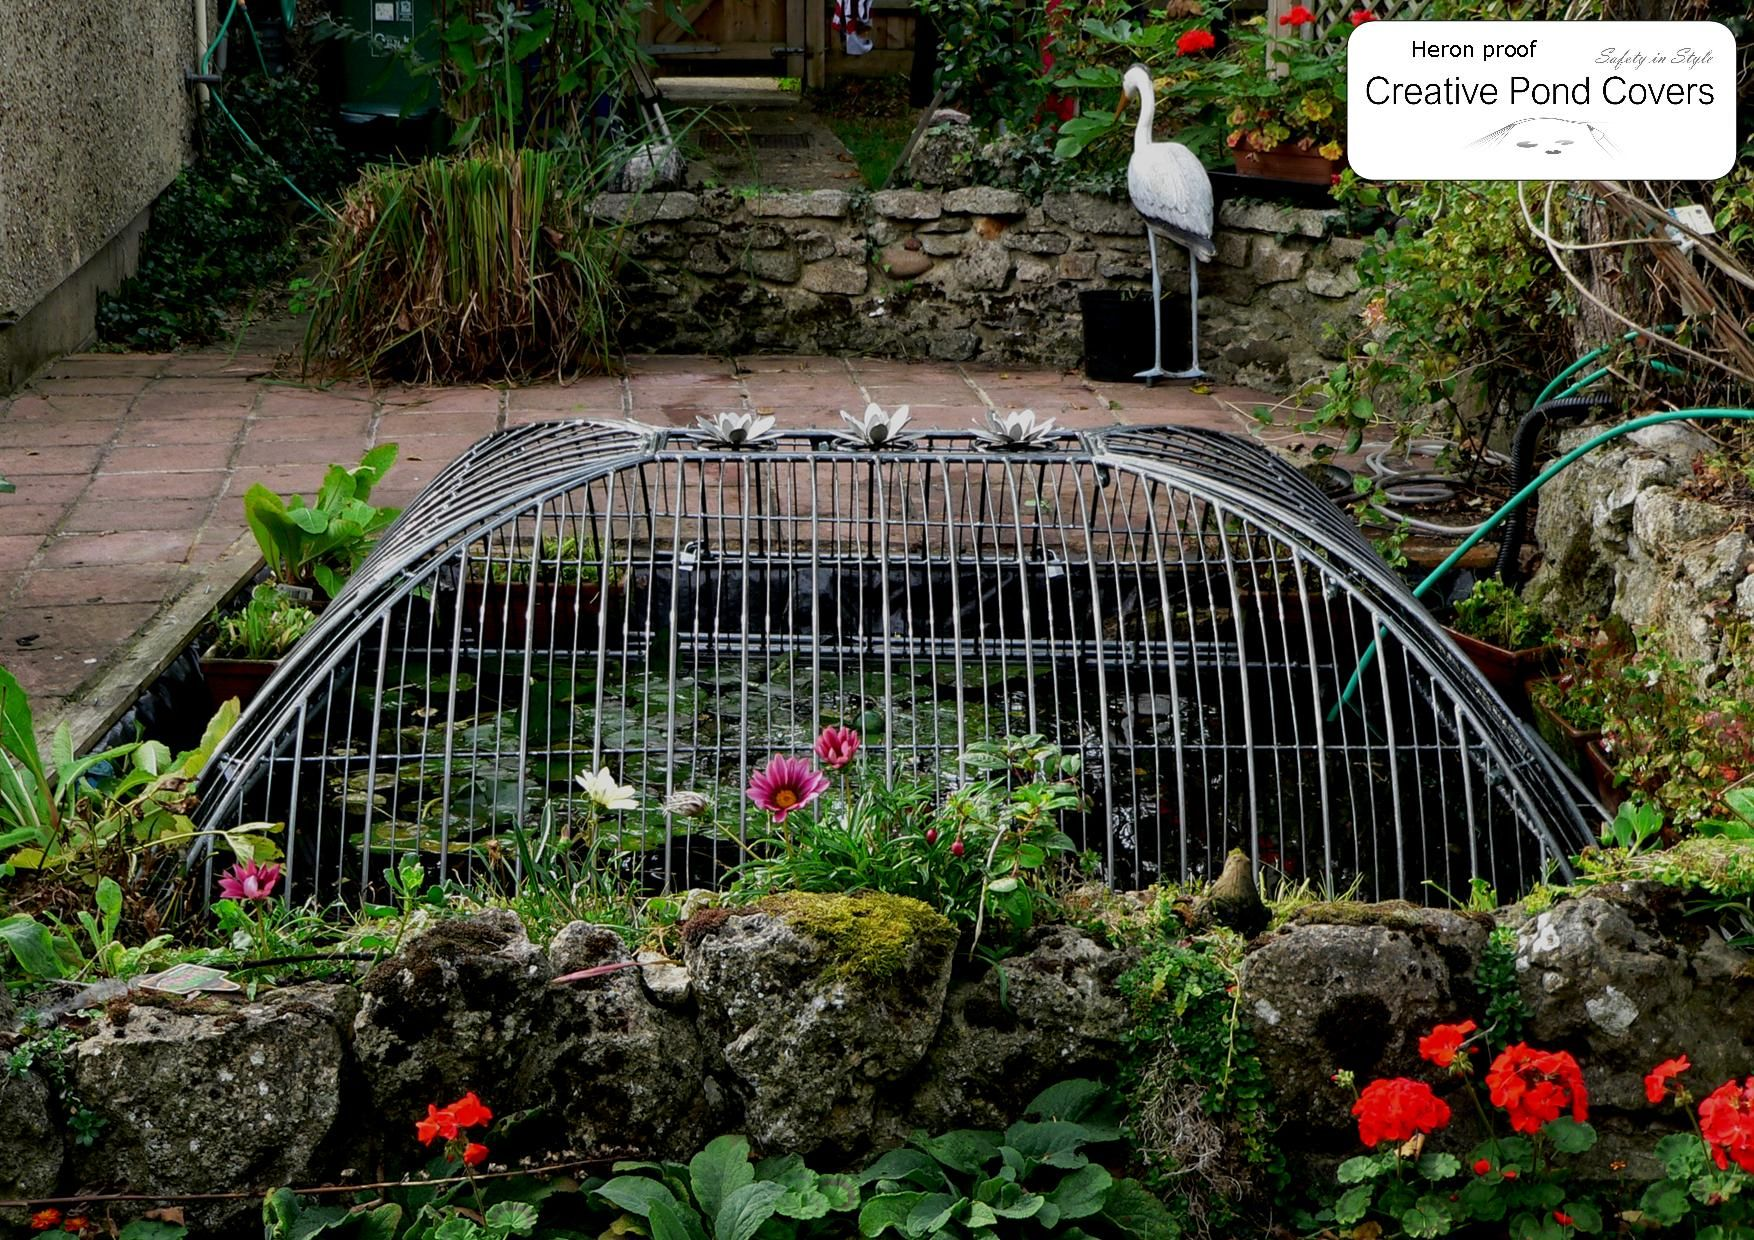 high dome pond covers for 100 protection from herons and